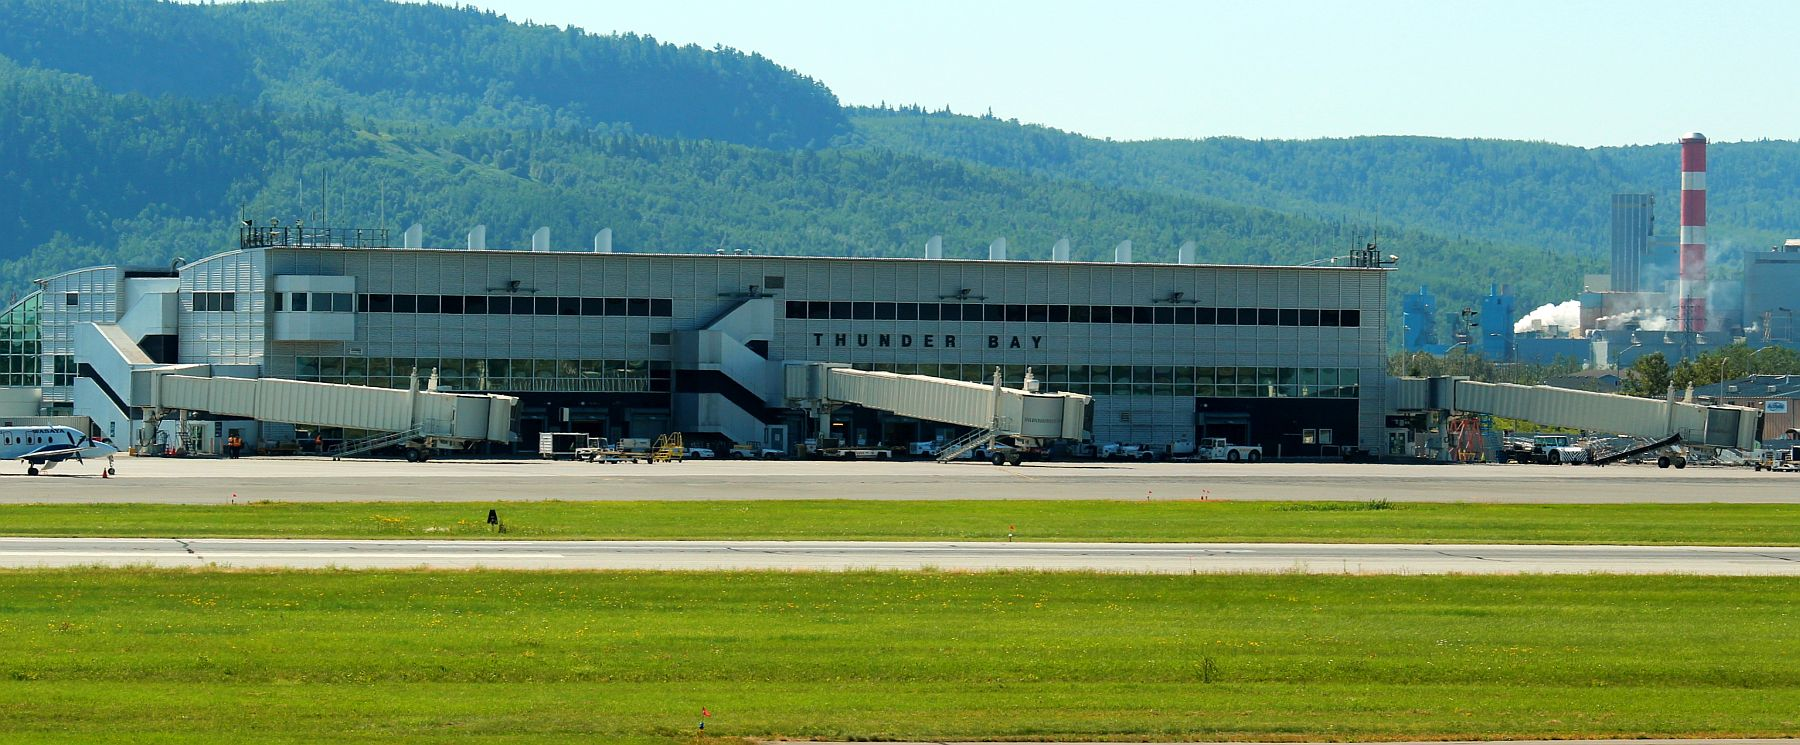 The Thunder Bay International Airport